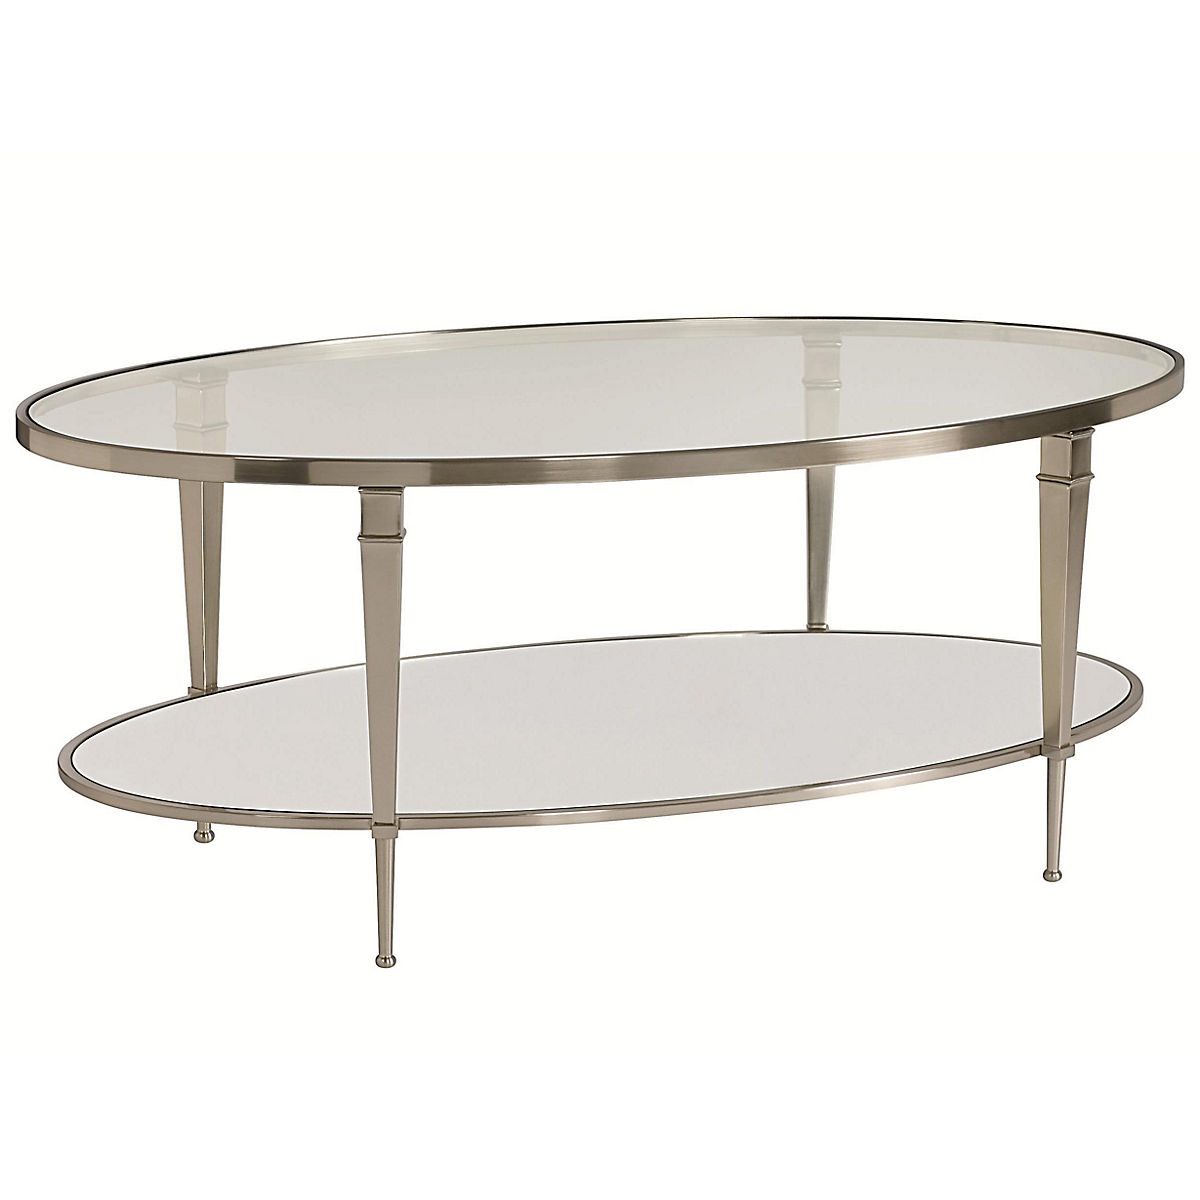 Oval Coffee Table With Shelf.Harper Oval Coffee Table Star Furniture